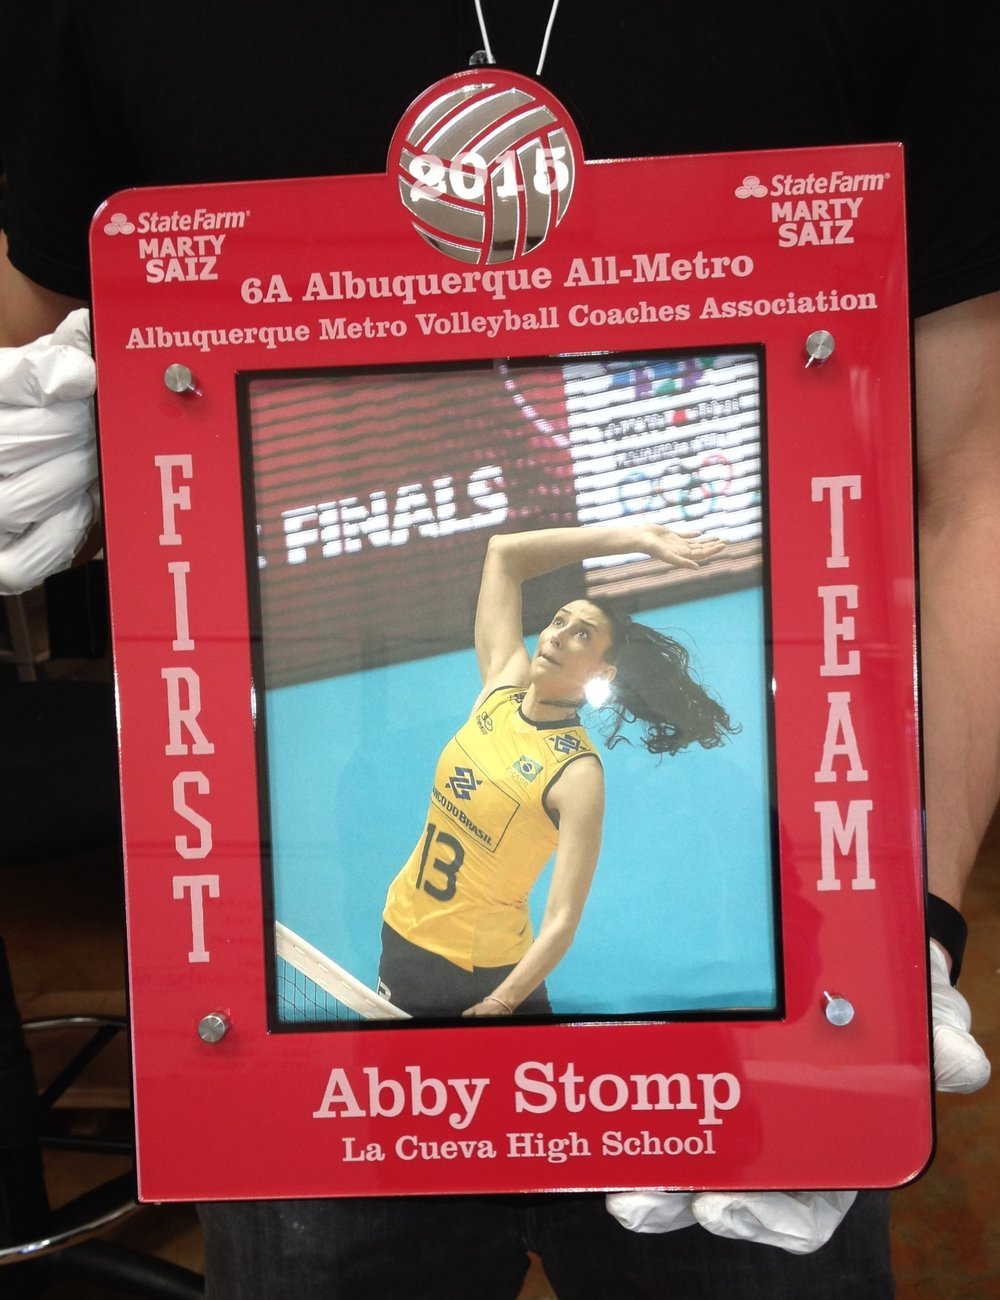 8x10 Portrait - First Team Volleyball Award  Contact us for pricing information.